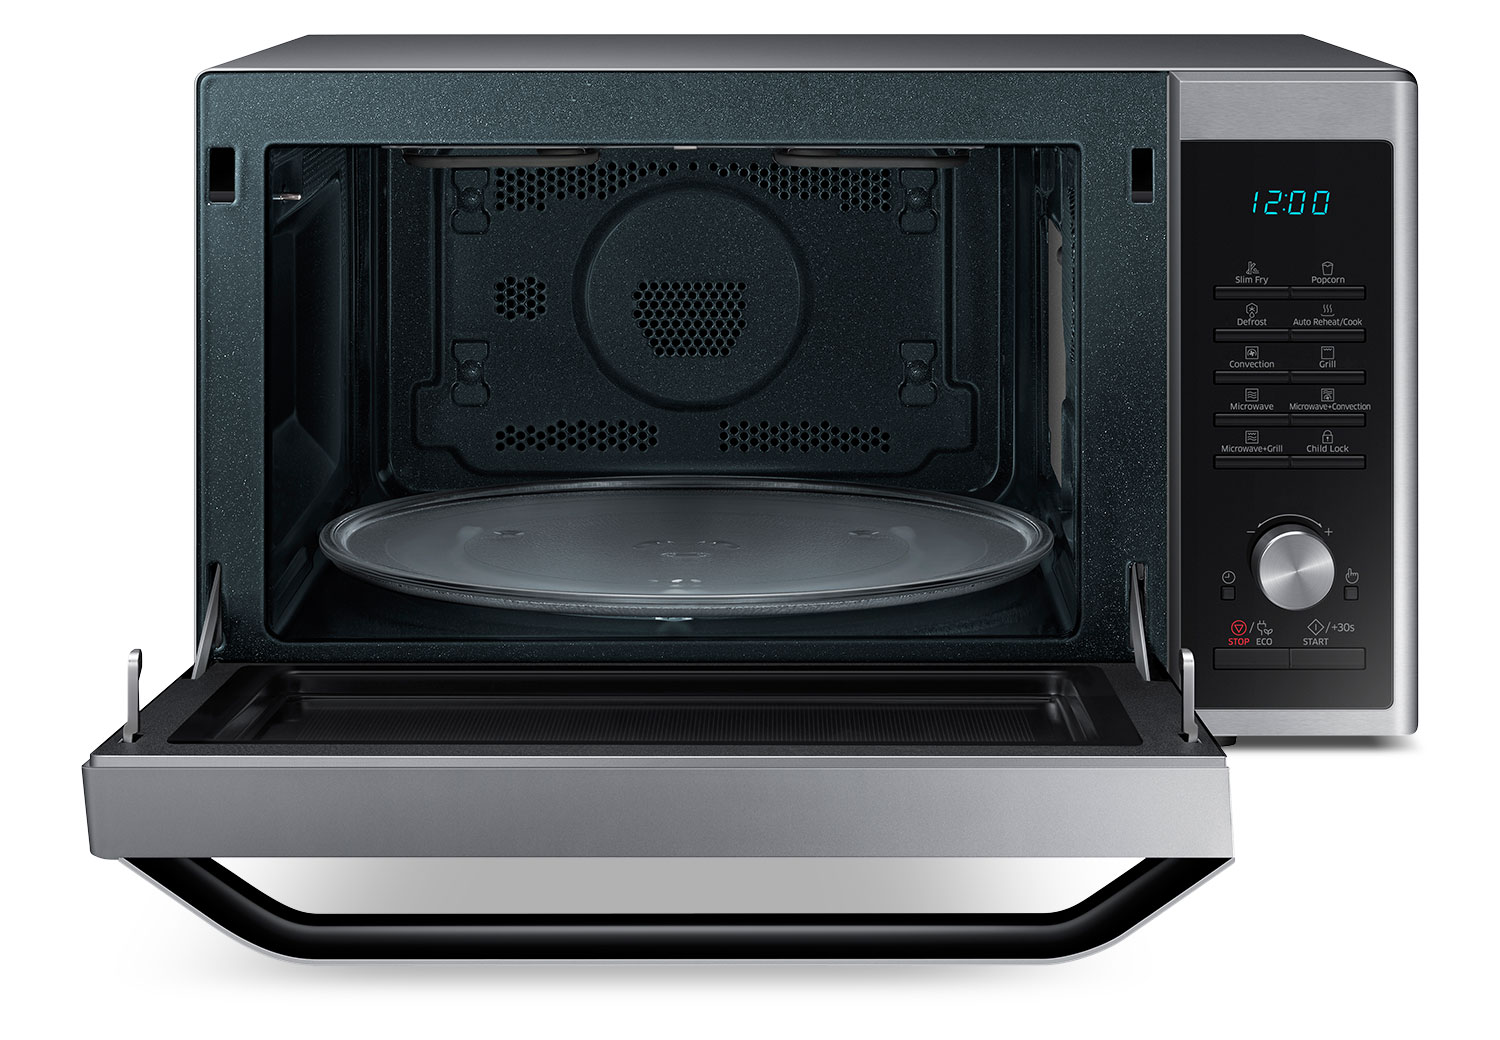 Samsung Countertop Convection Microwave Oven : Samsung Stainless Steel Countertop Convection Microwave (1.1 Cu. Ft ...